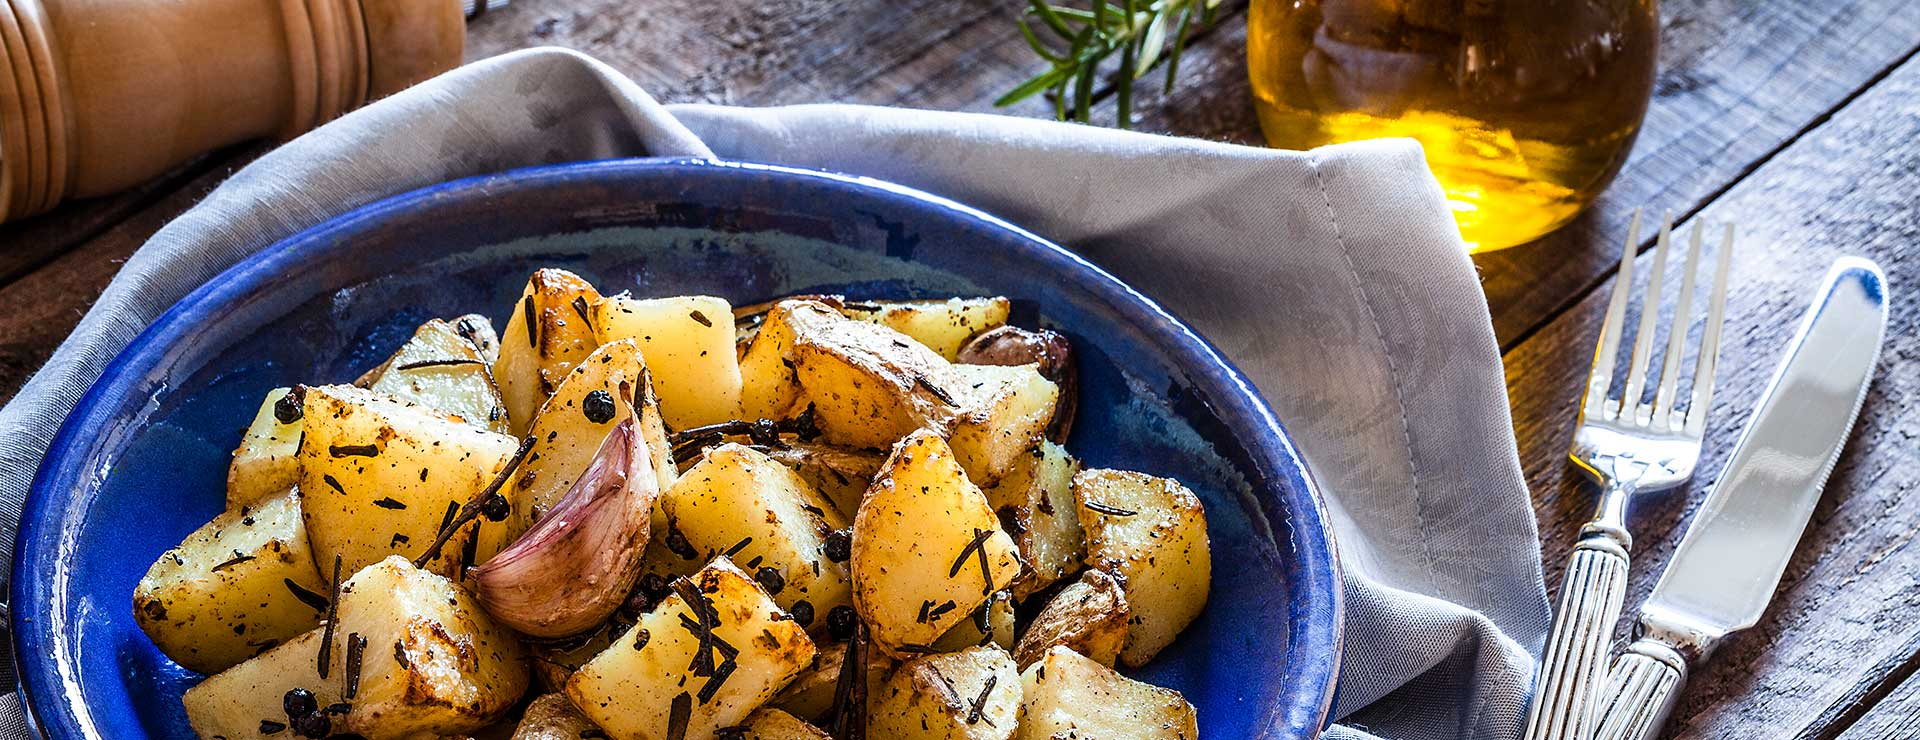 A dish of herb roasted potatoes.